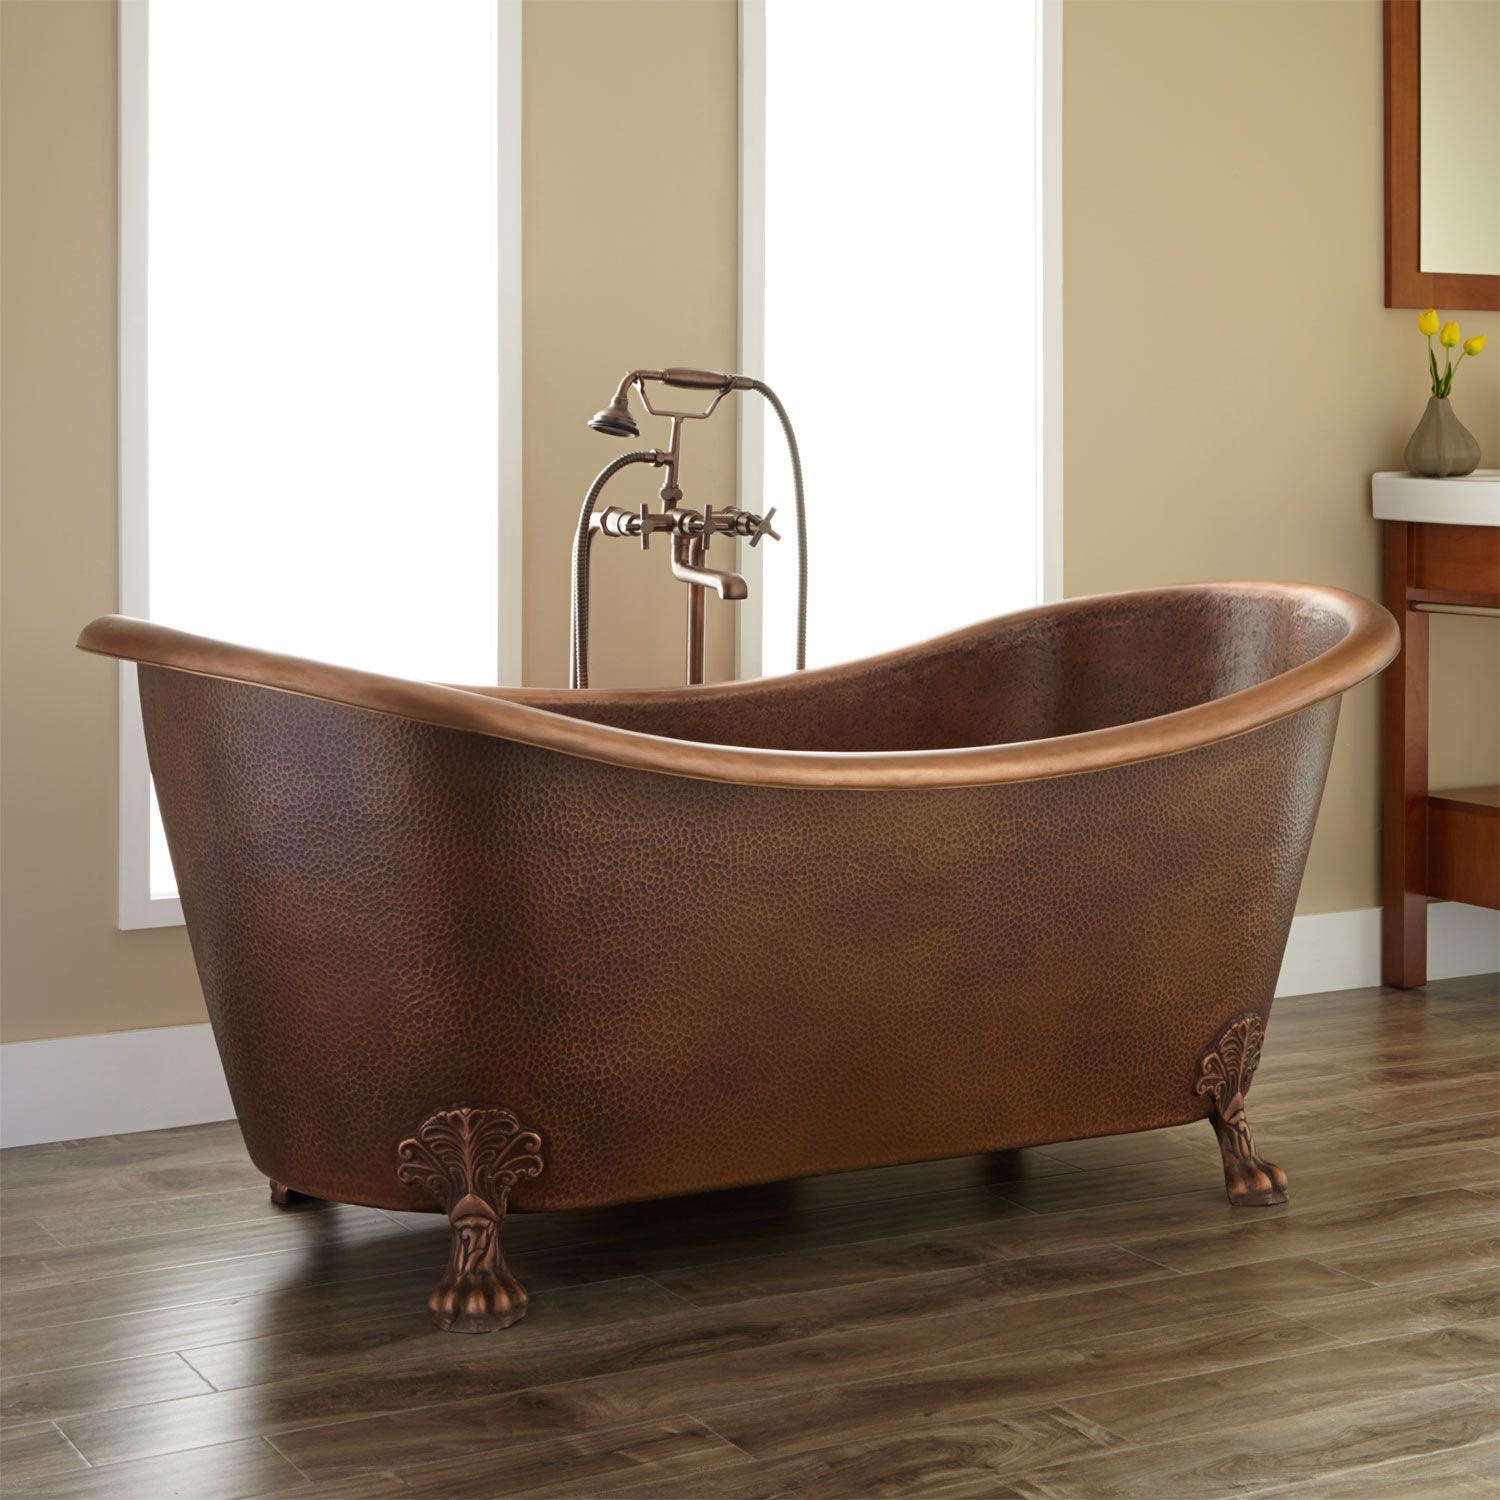 Josette Copper Double Slipper Clawfoot Tub Bathtubs Bathroom Copper Clawfoot Tubs Clawfoot Tub Copper Tub